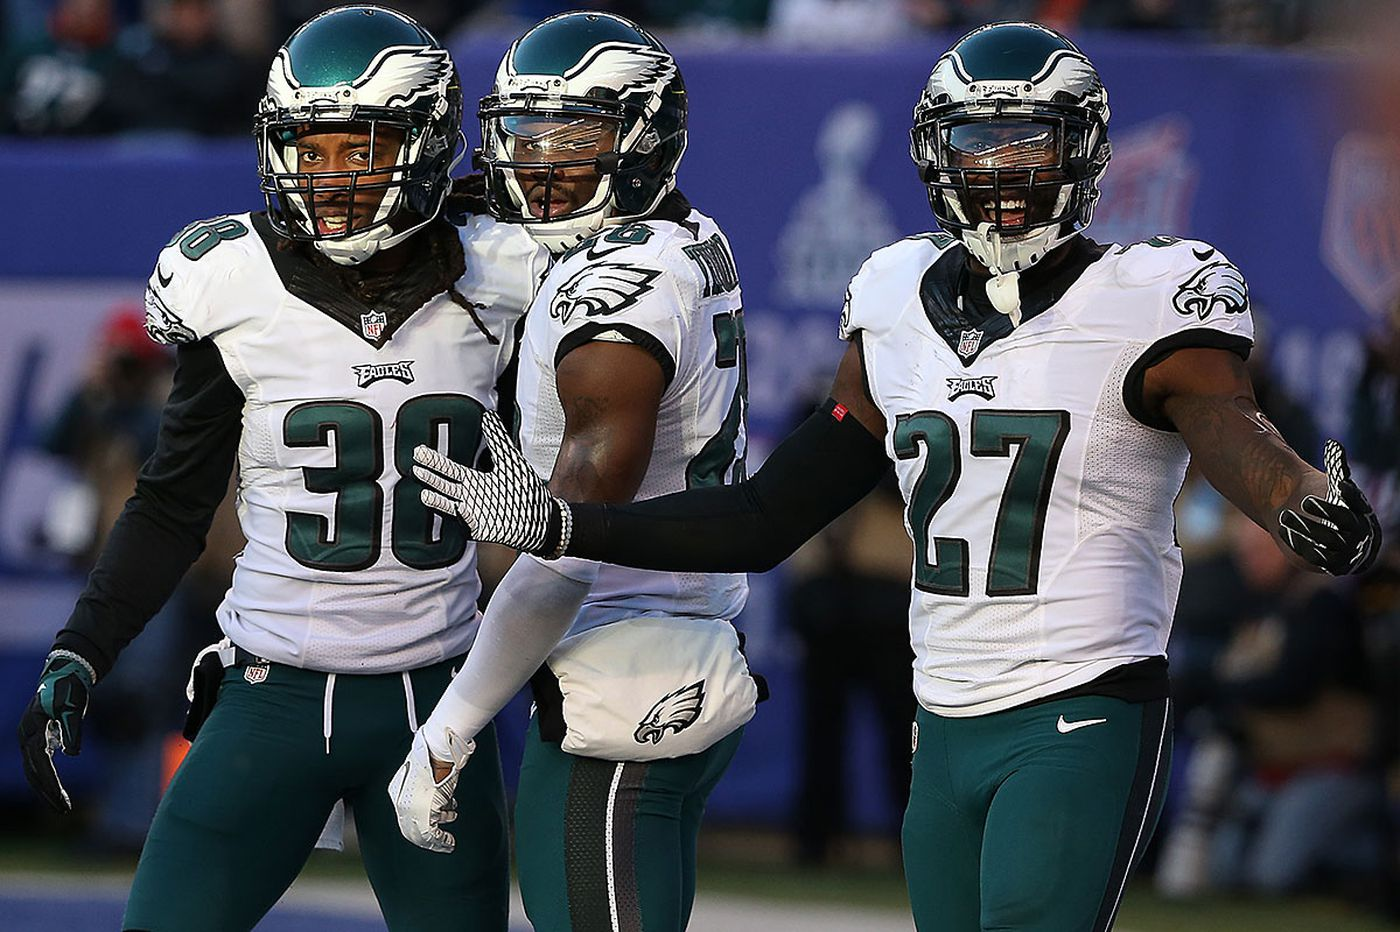 Malcolm Jenkins absent for start of Eagles OTAs, likely to miss all three weeks